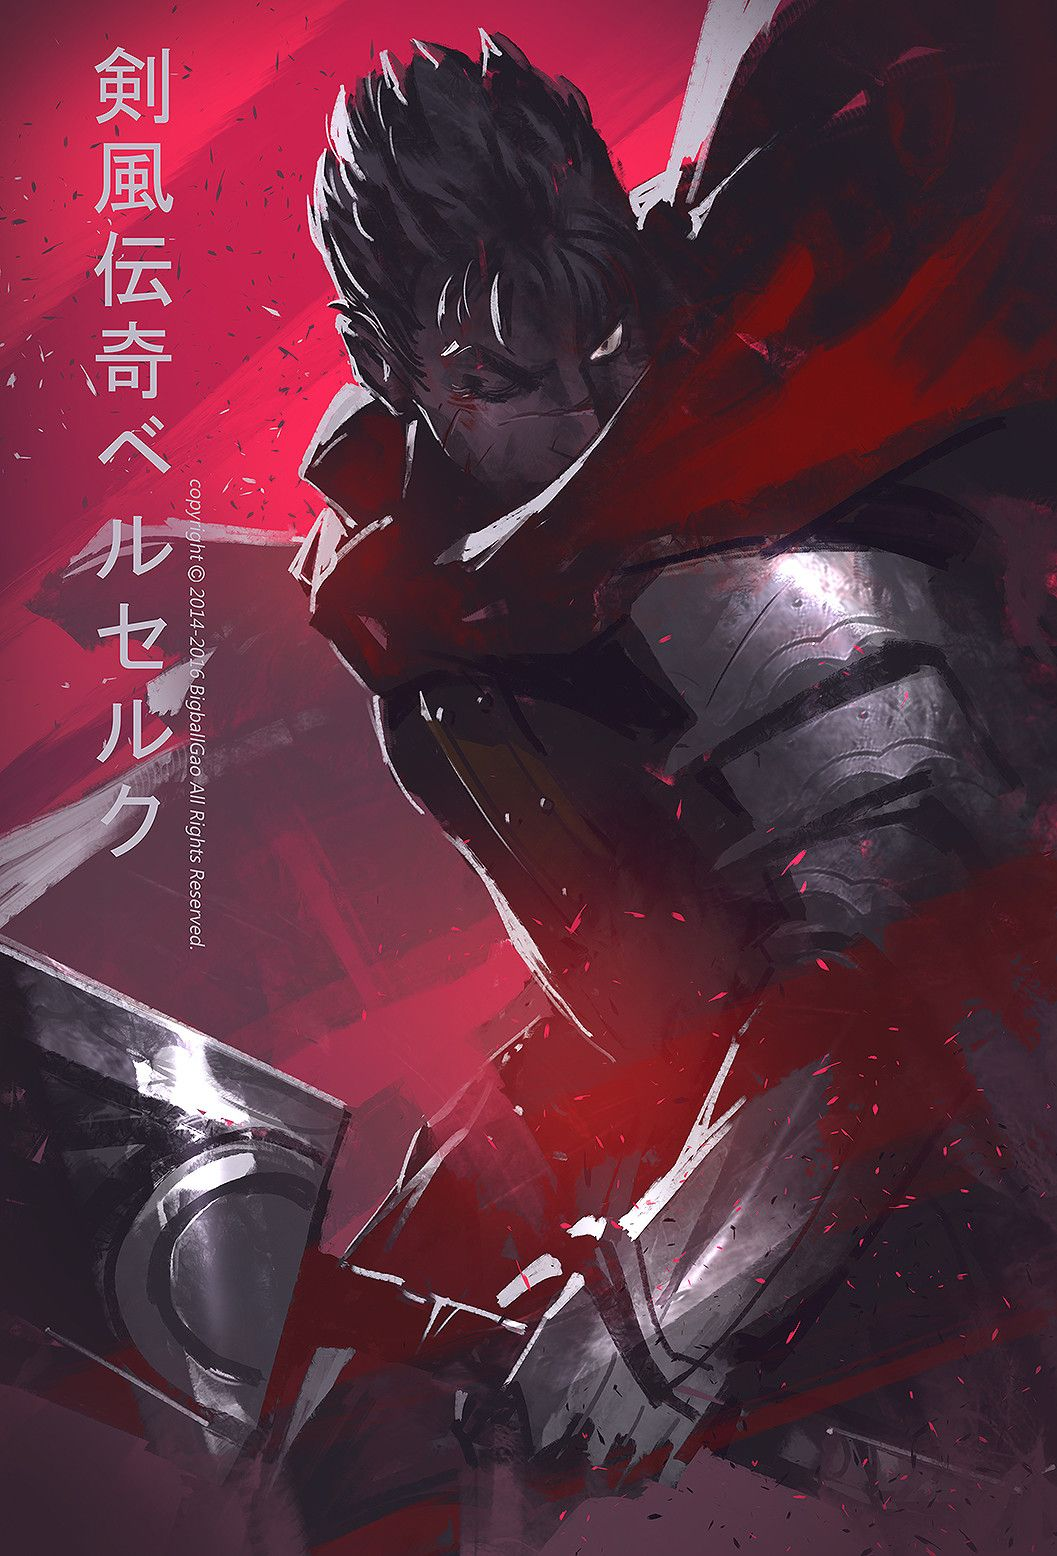 Artstation Berserk Bigball Gao Berserk Interesting Drawings Anime